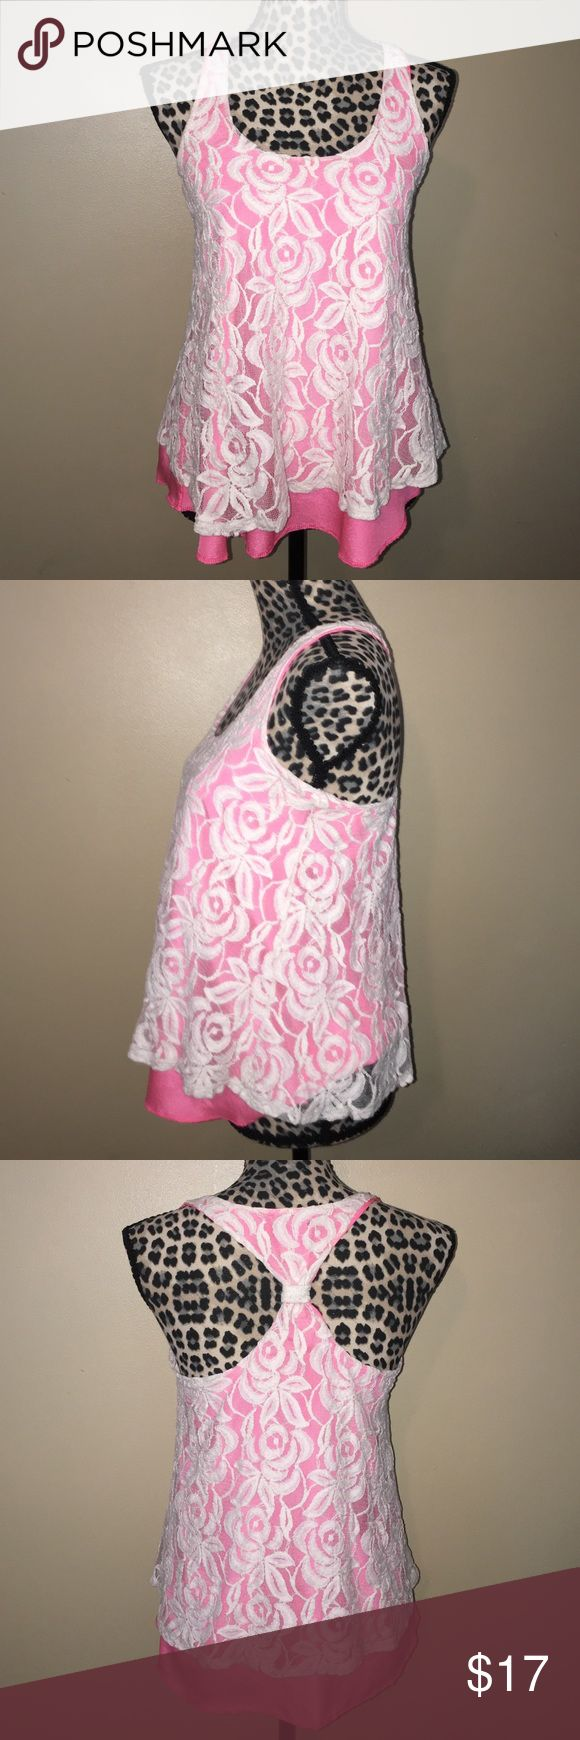 Lace Overlay Top Upper cute Rue 21 top, size m, in good condition Rue 21 Tops